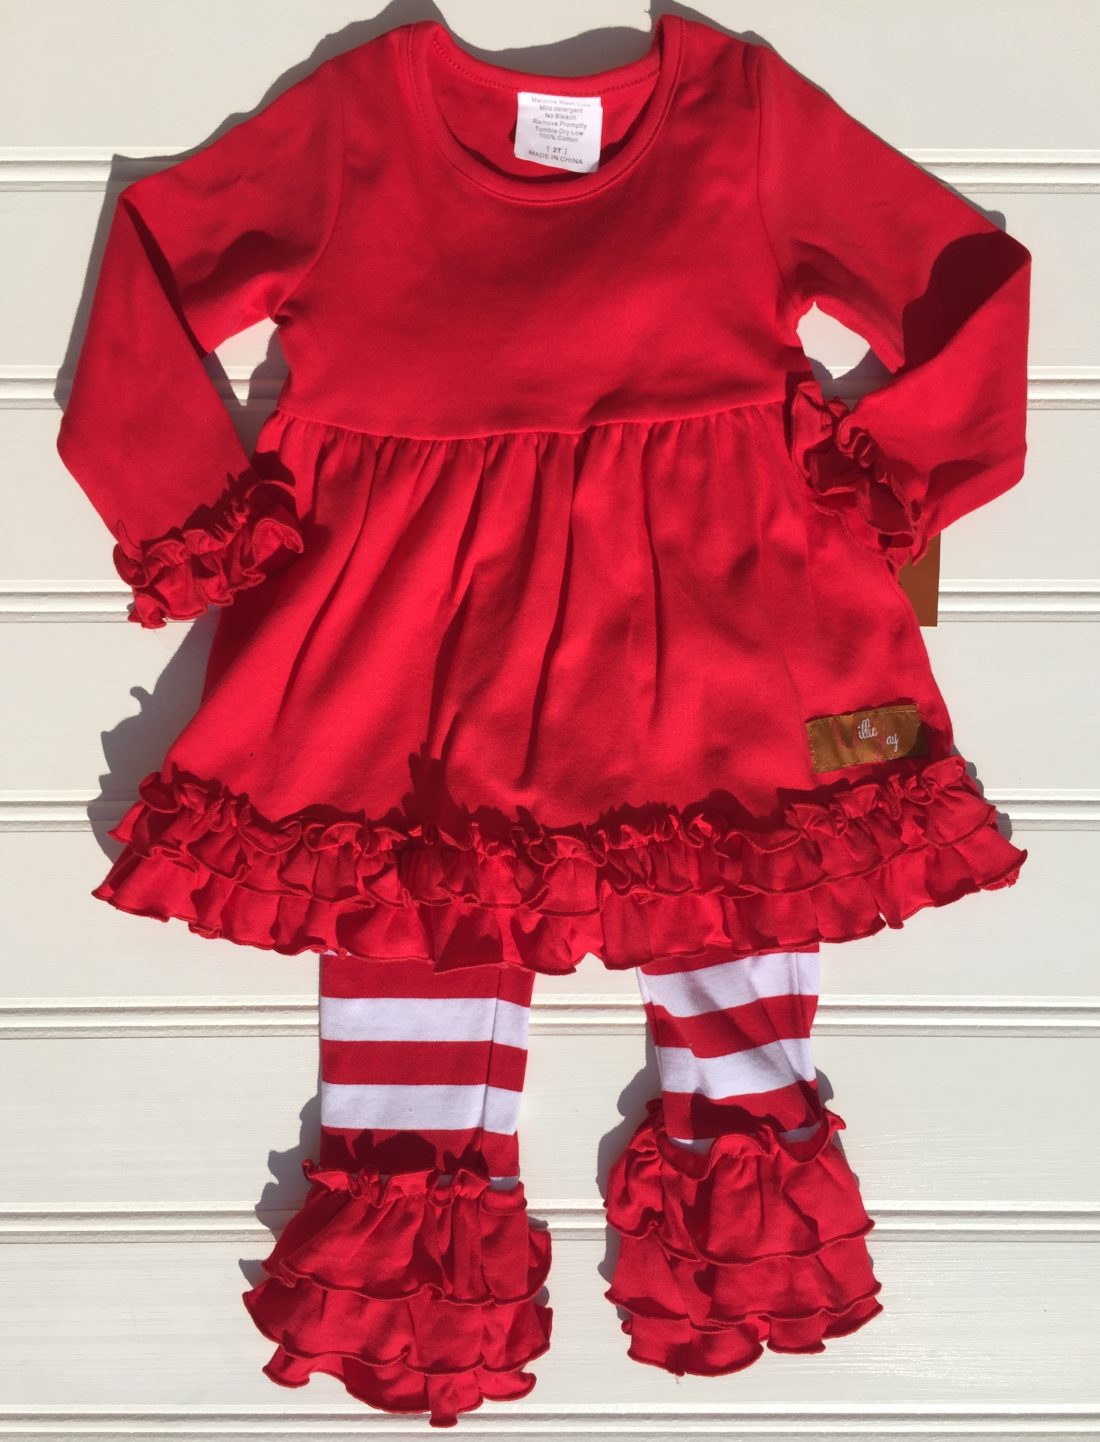 Millie jay Red white stripe Christmas ruffle pantset. The white dogwood